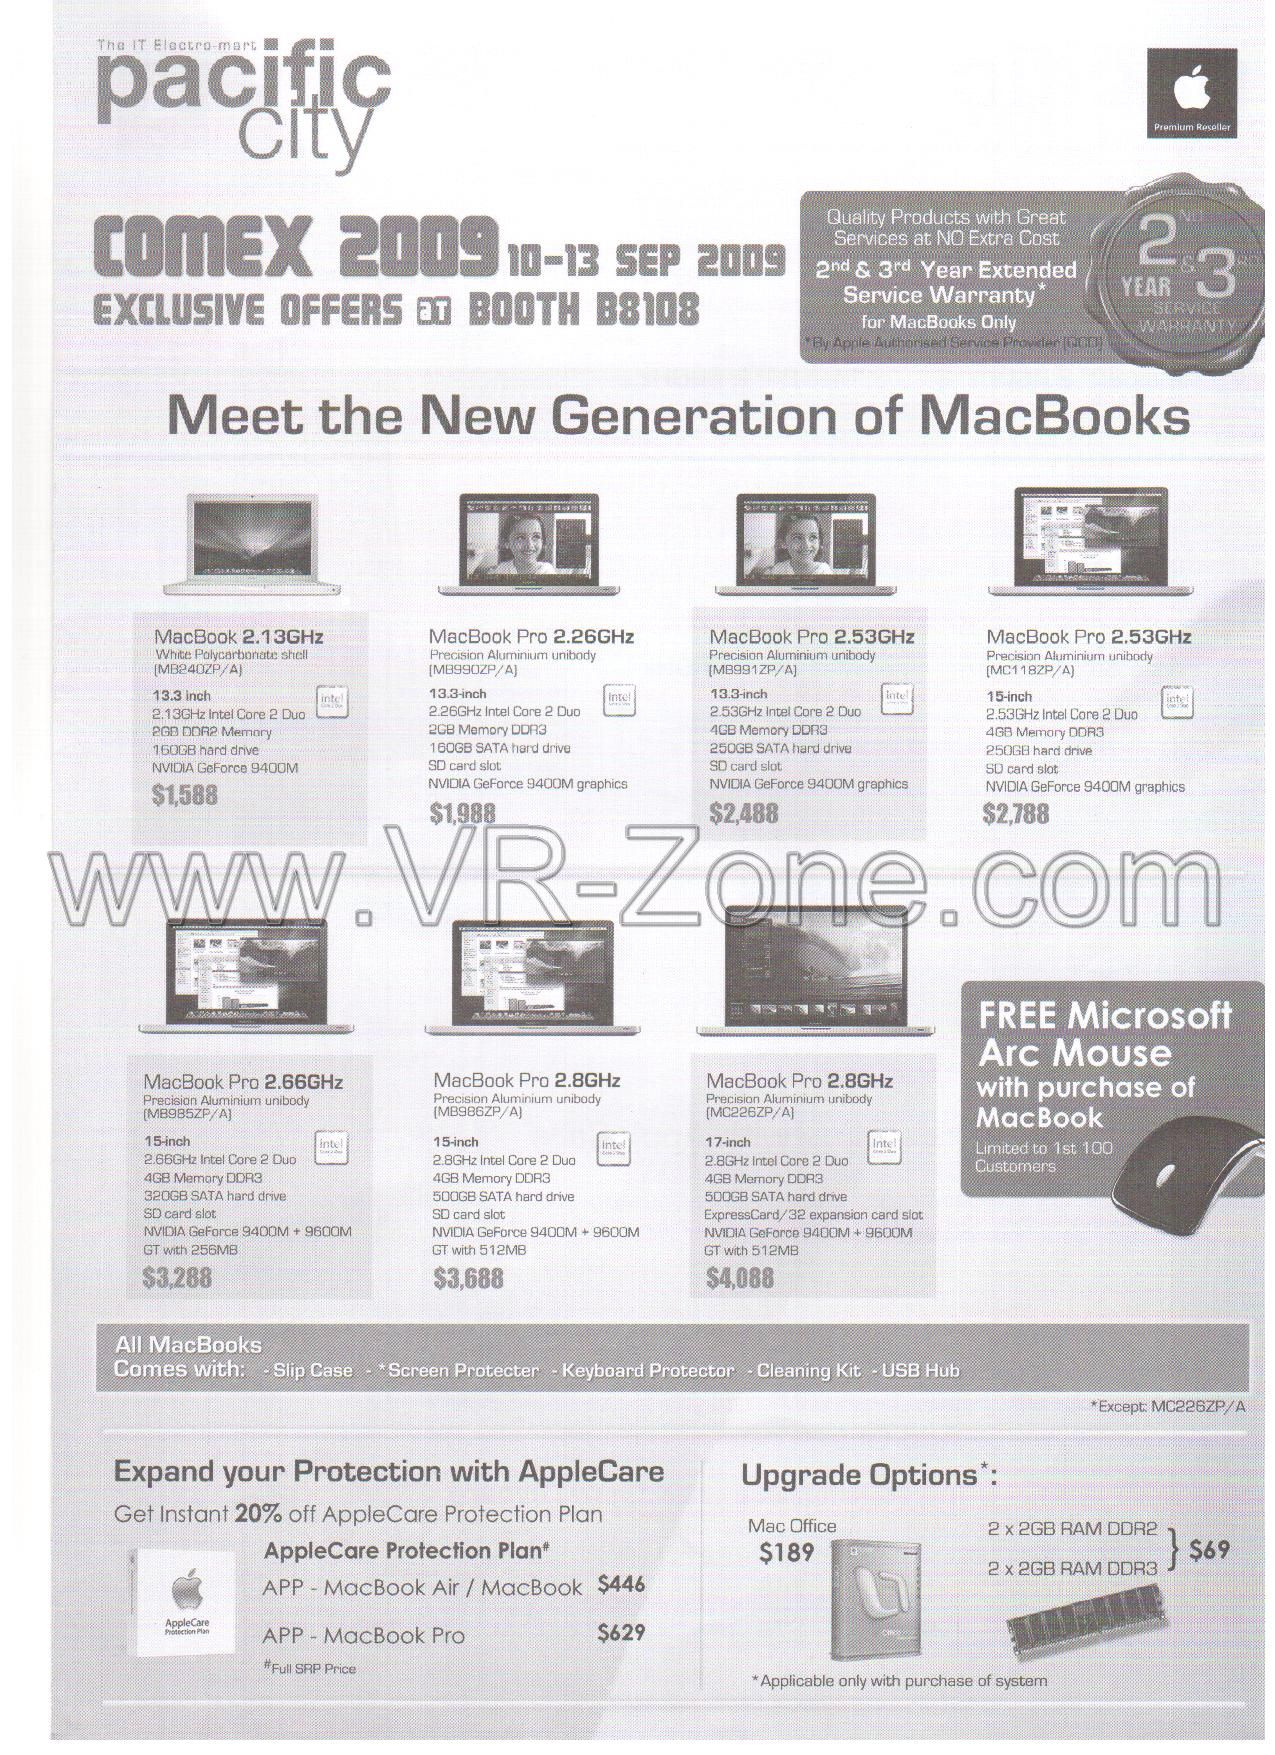 Comex 2009 price list image brochure of Apple MacBook Pro Pacific City